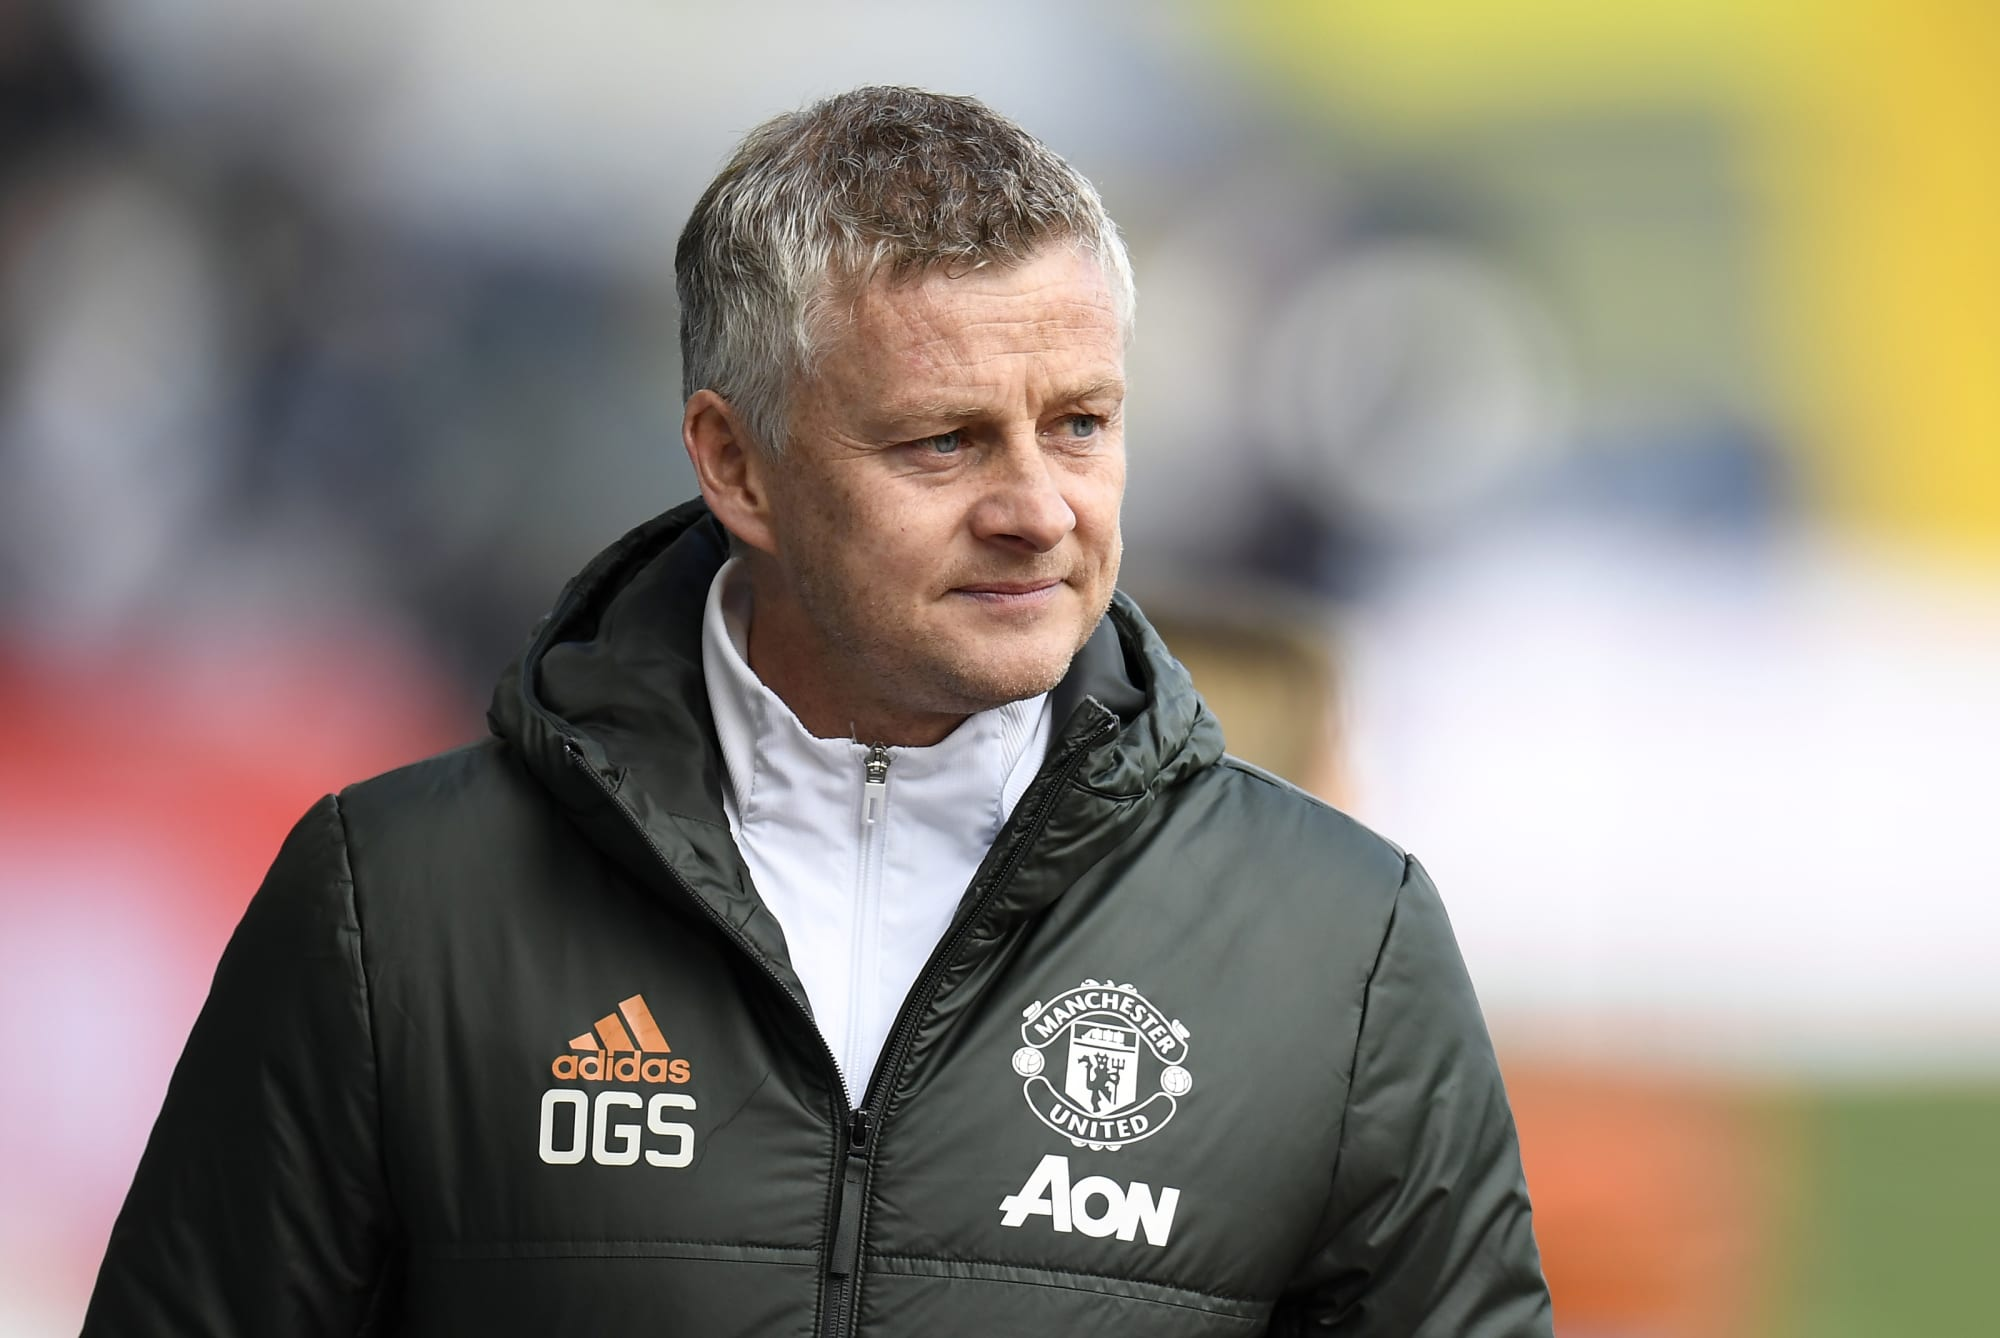 Manchester United board's stance on Solskjaer has changed